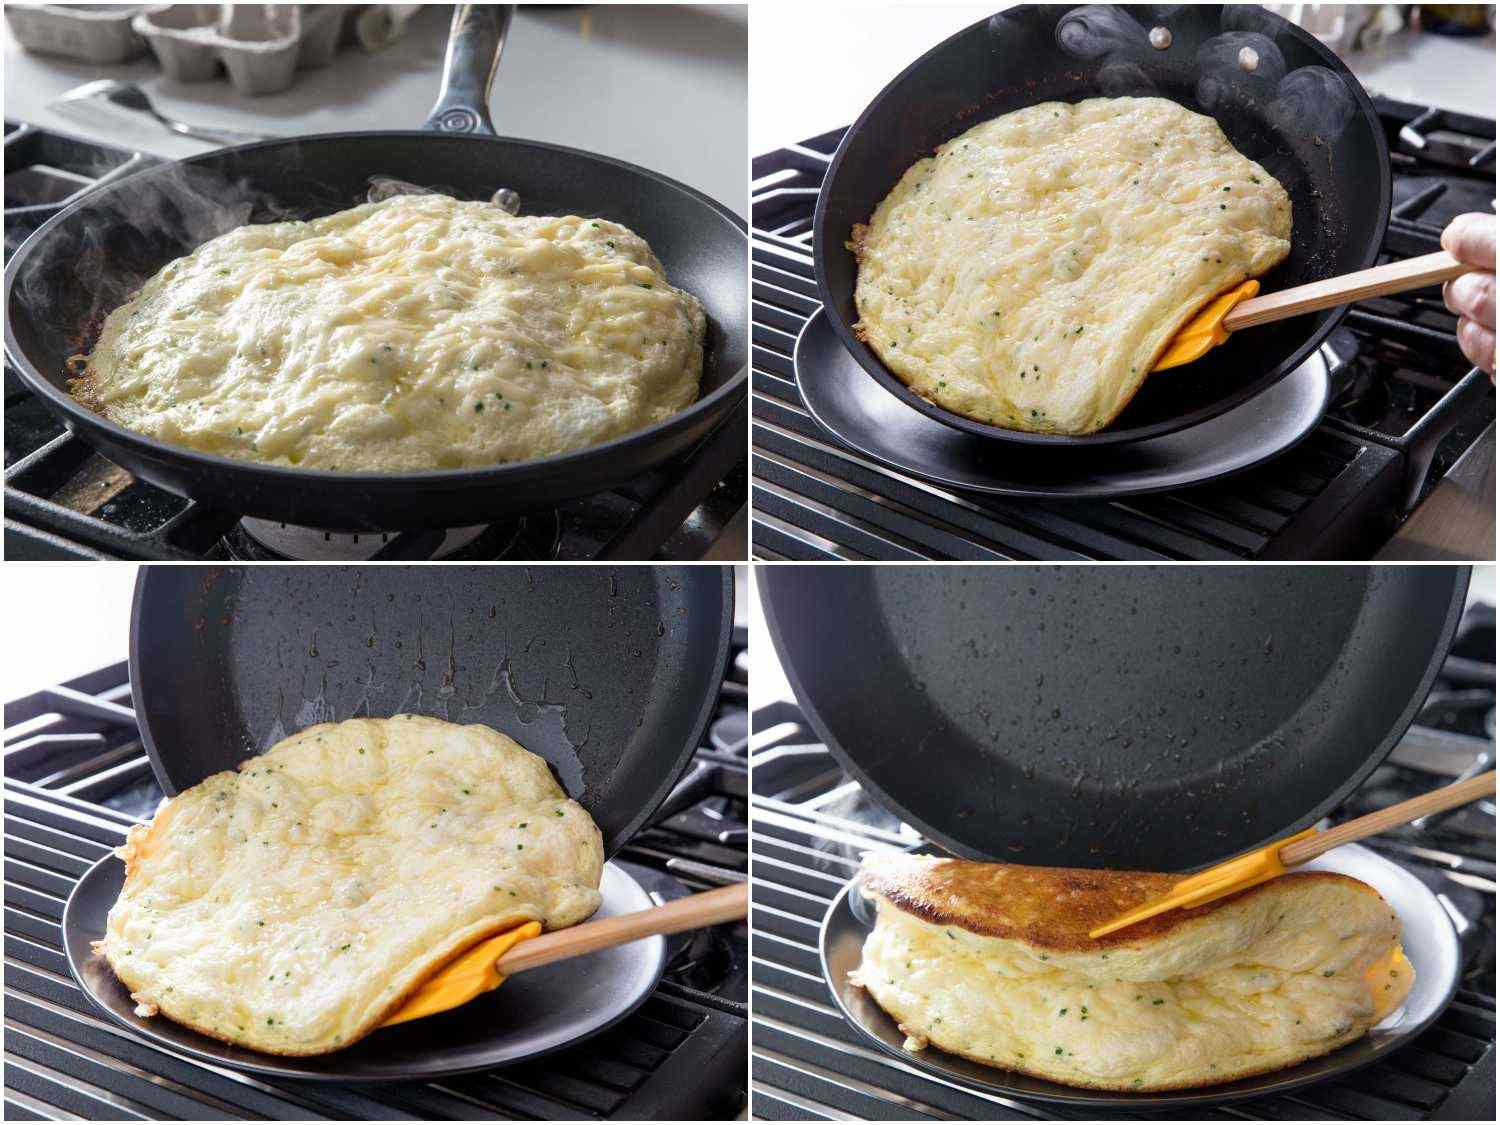 process of sliding an omelette soufflé out of the pan and onto a plate, then folding it